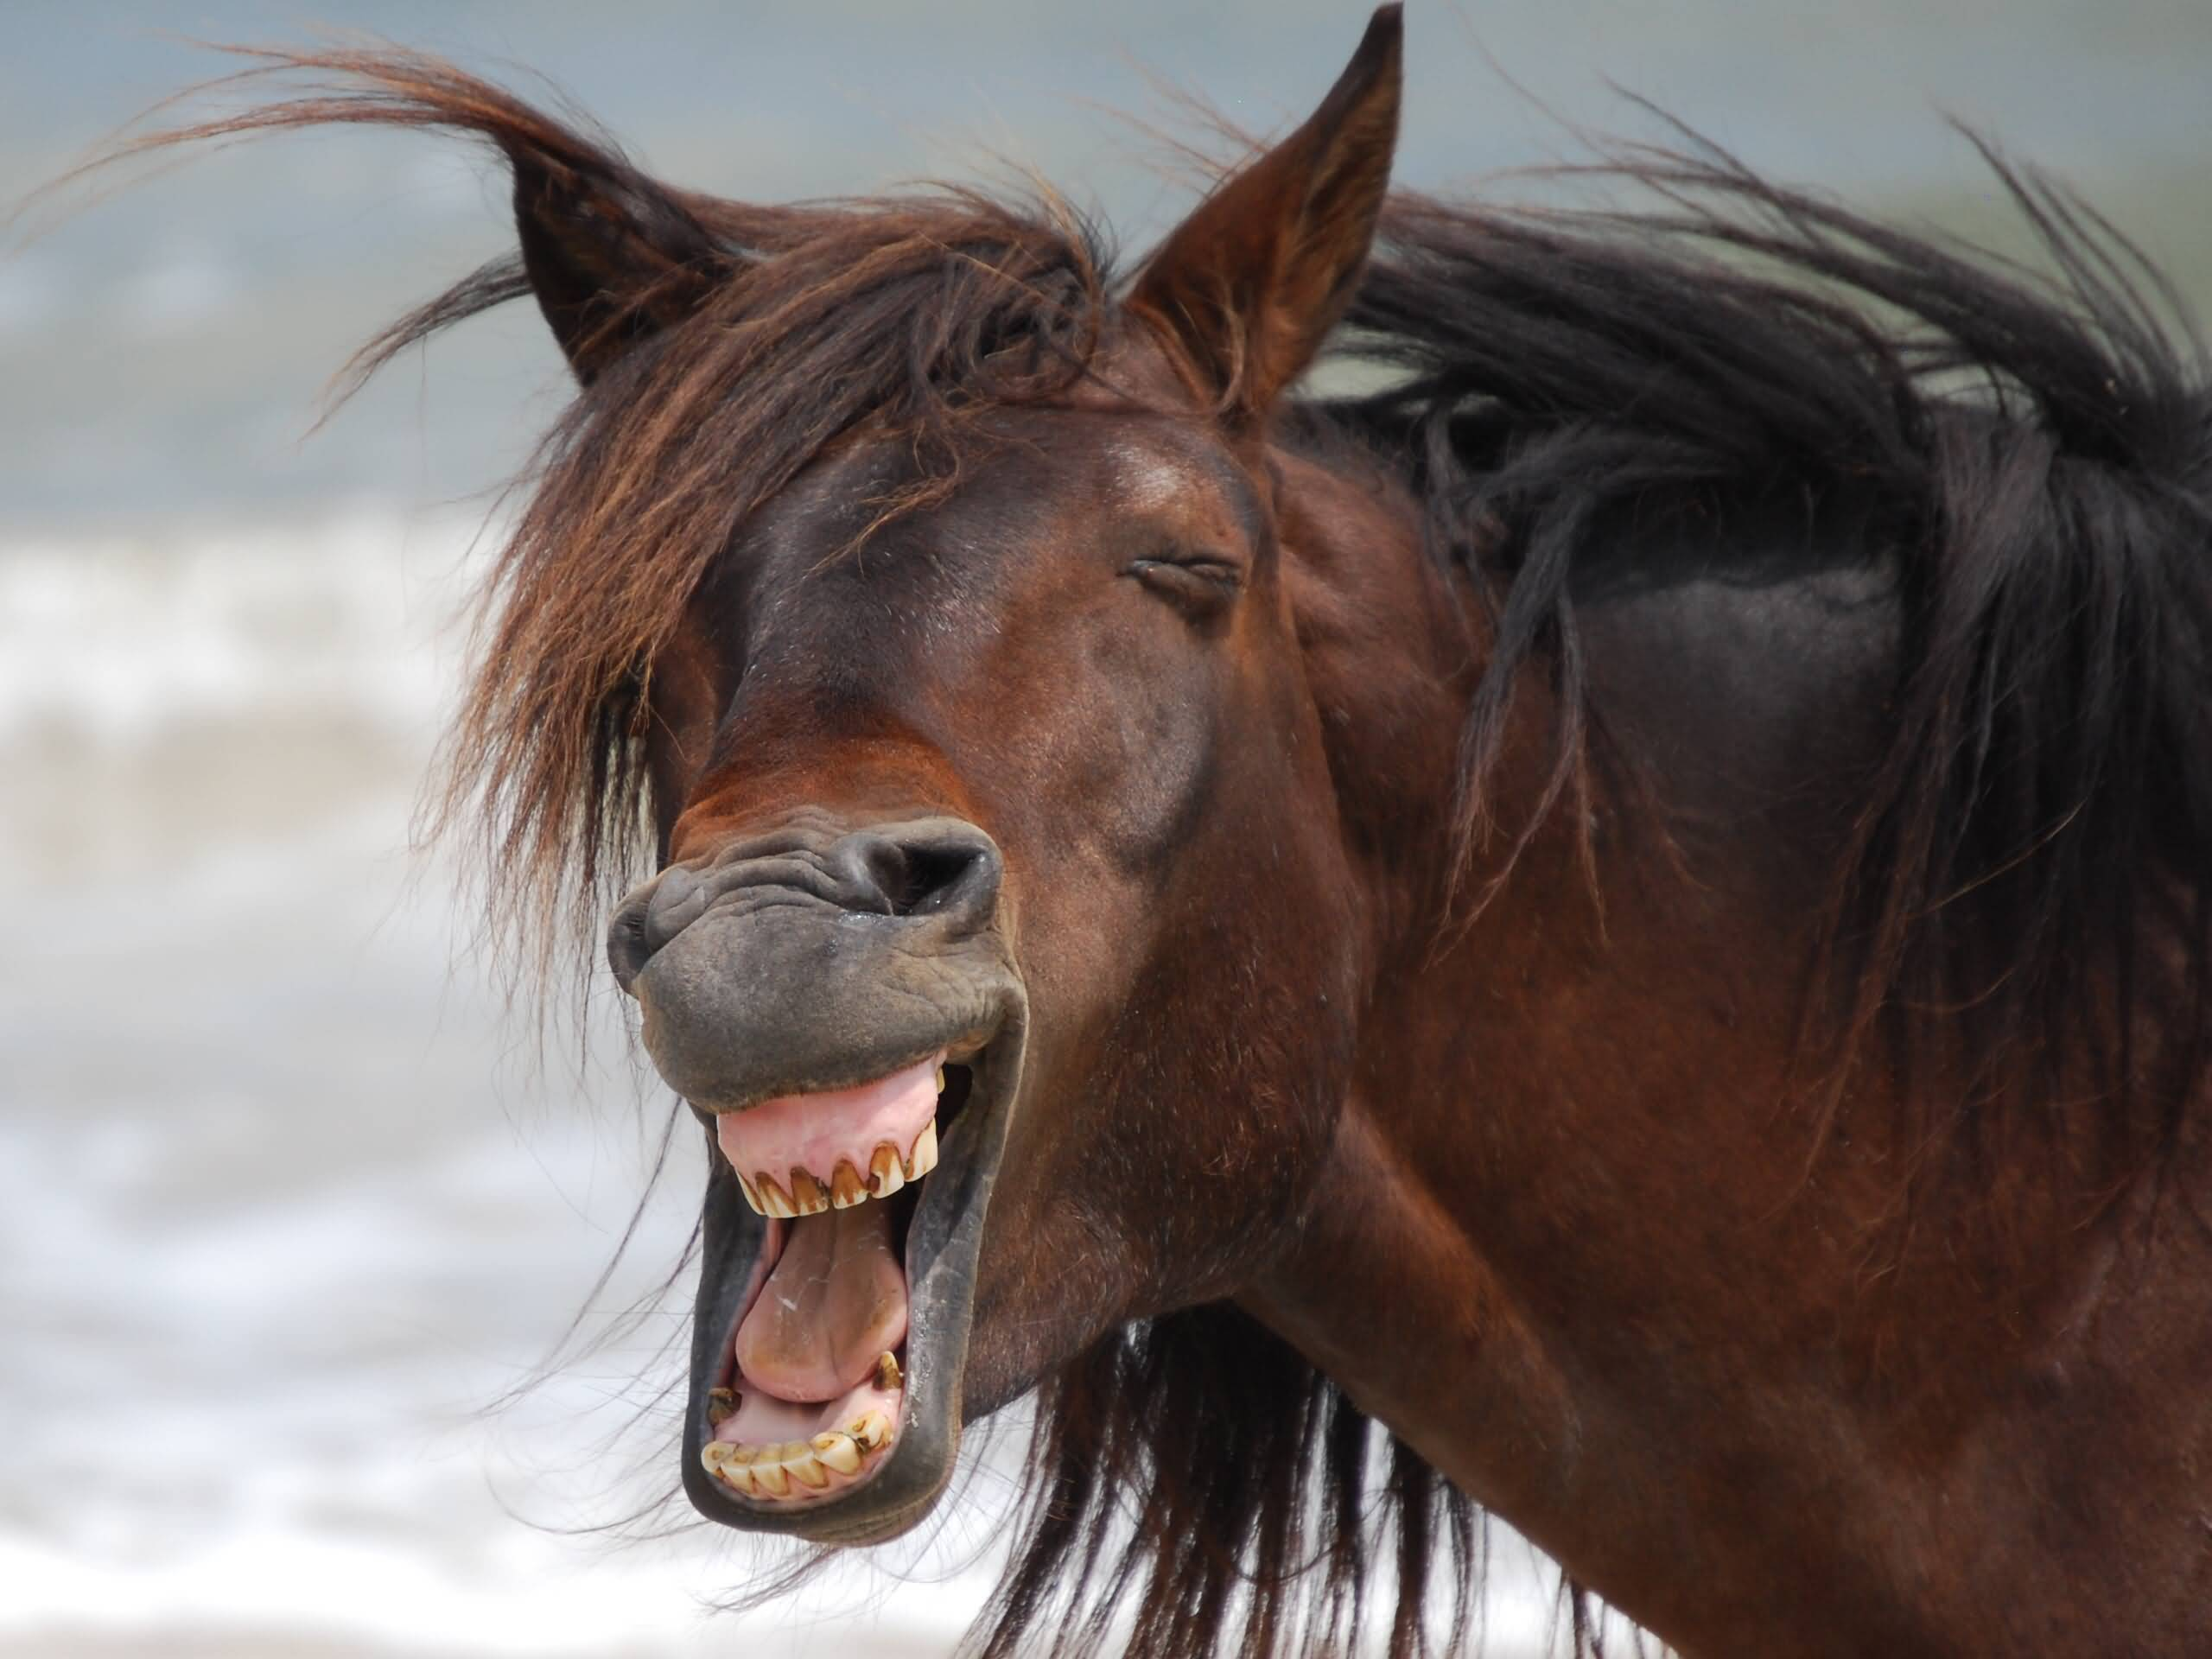 Laughing Face Funny Horse Picture - photo#20